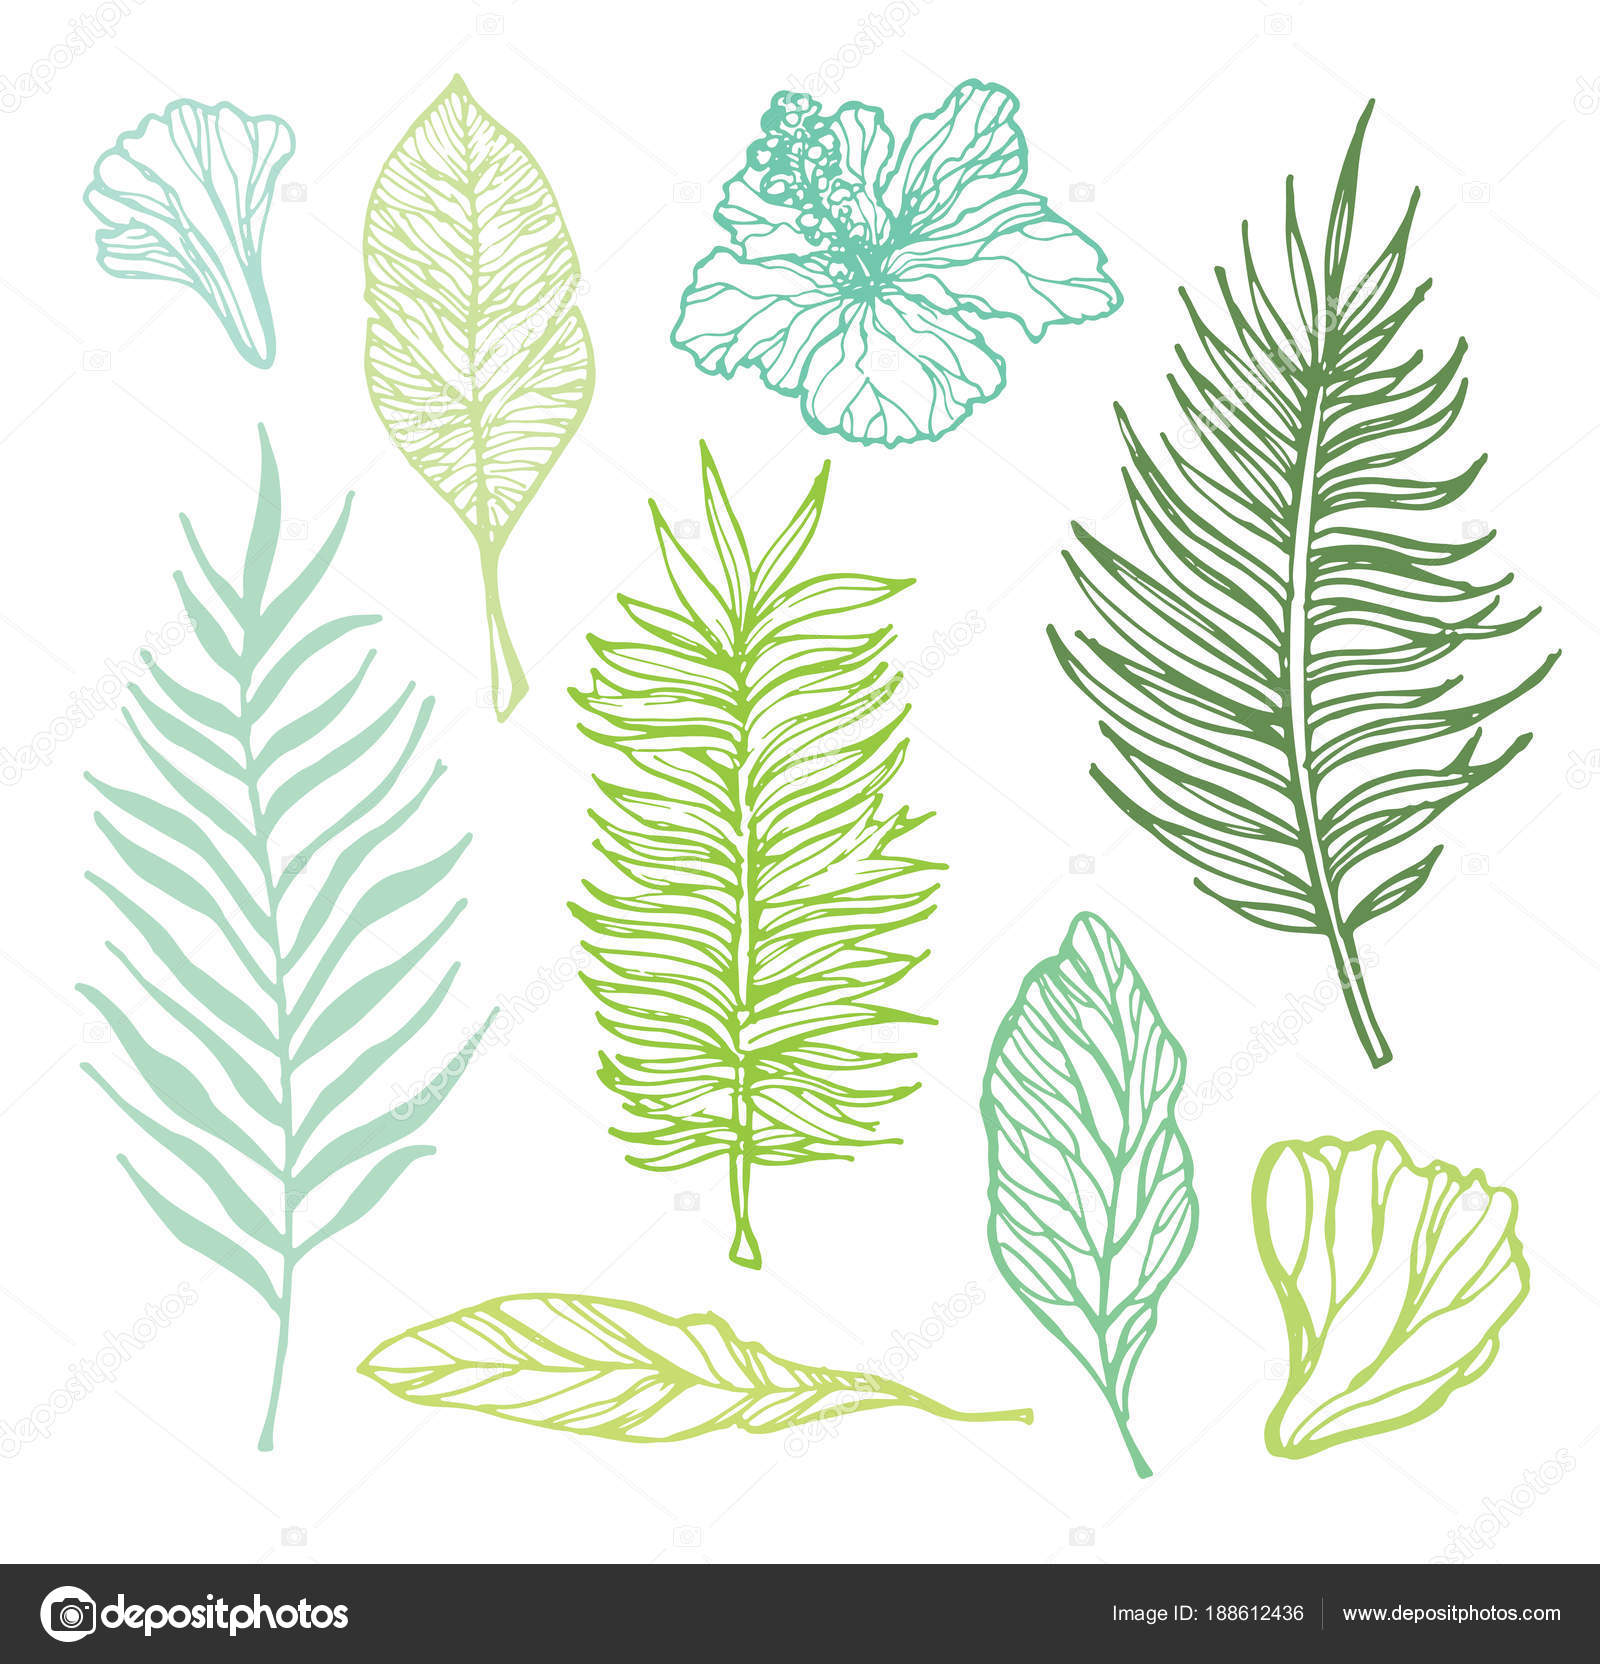 Hand Drawn Doodle Tropical Palm Leaves Stock Vector C Jane55 188612436 Hand drawn doodle pattern palm tree leaves tropical leaves. https depositphotos com 188612436 stock illustration hand drawn doodle tropical palm html